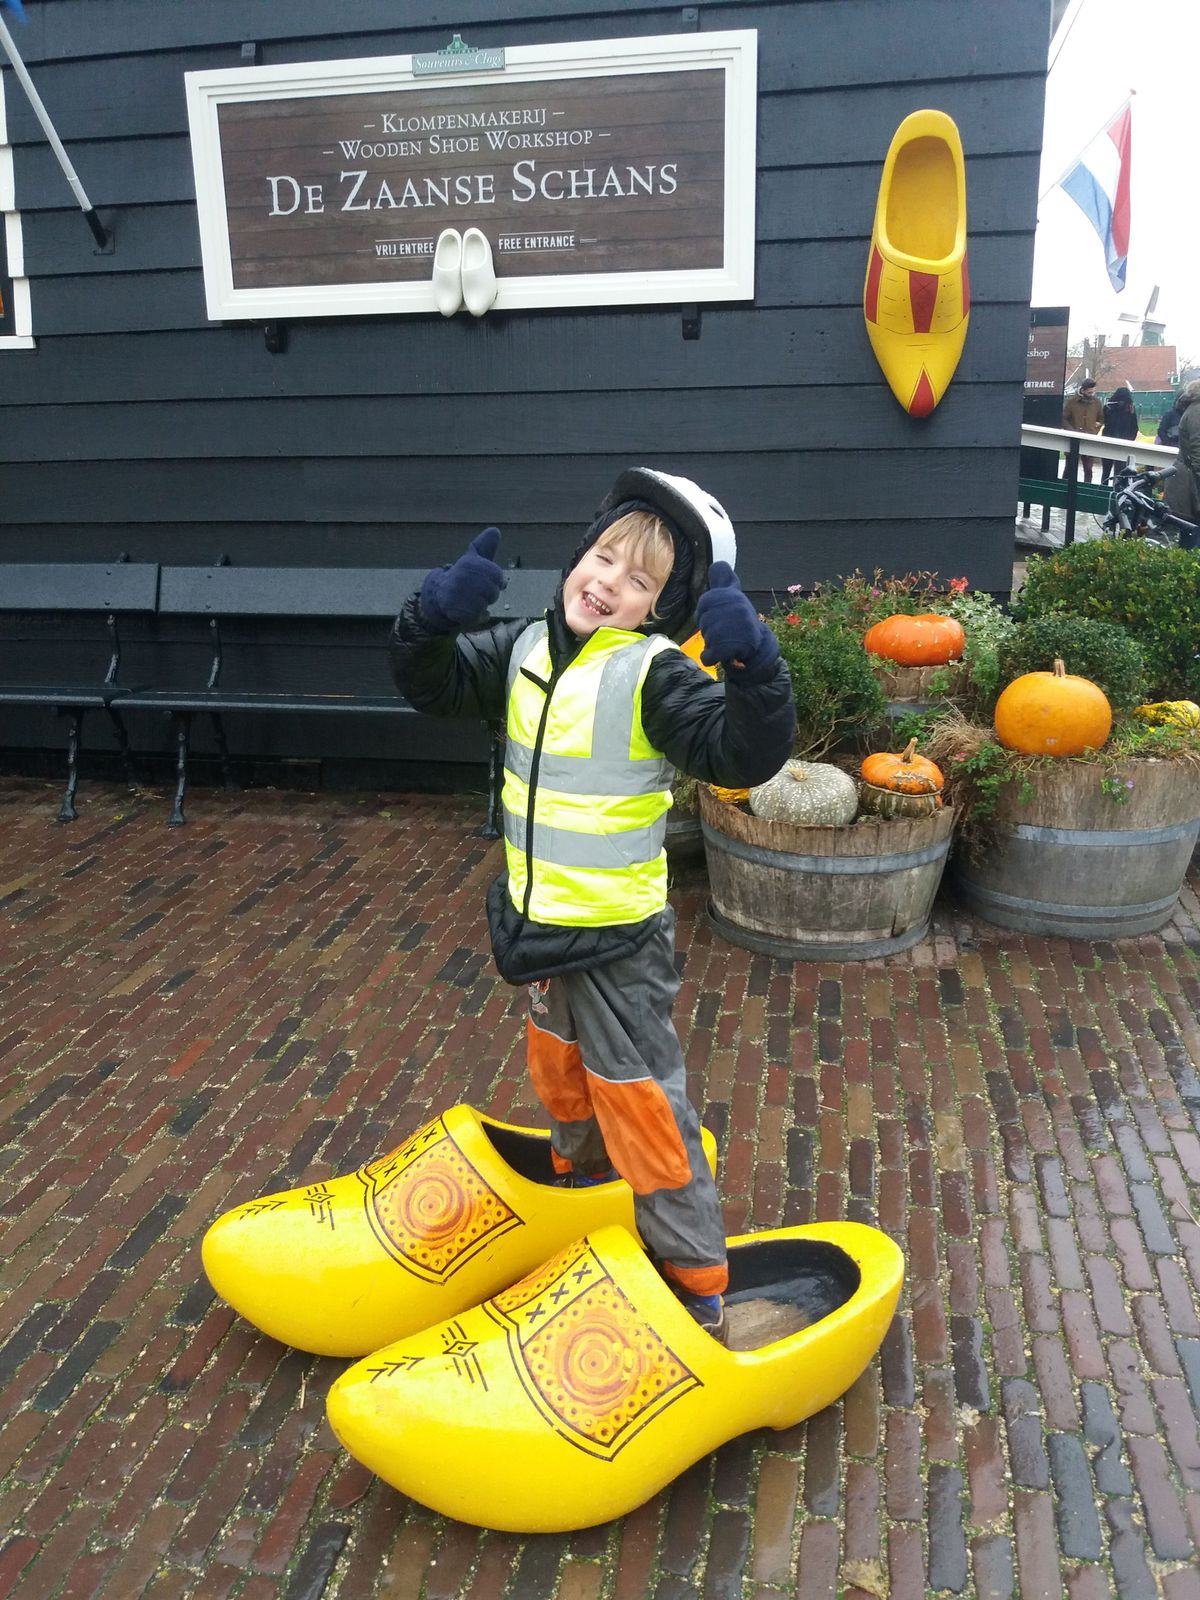 Harrison tries on a pair of clogs for size in Amsterdam